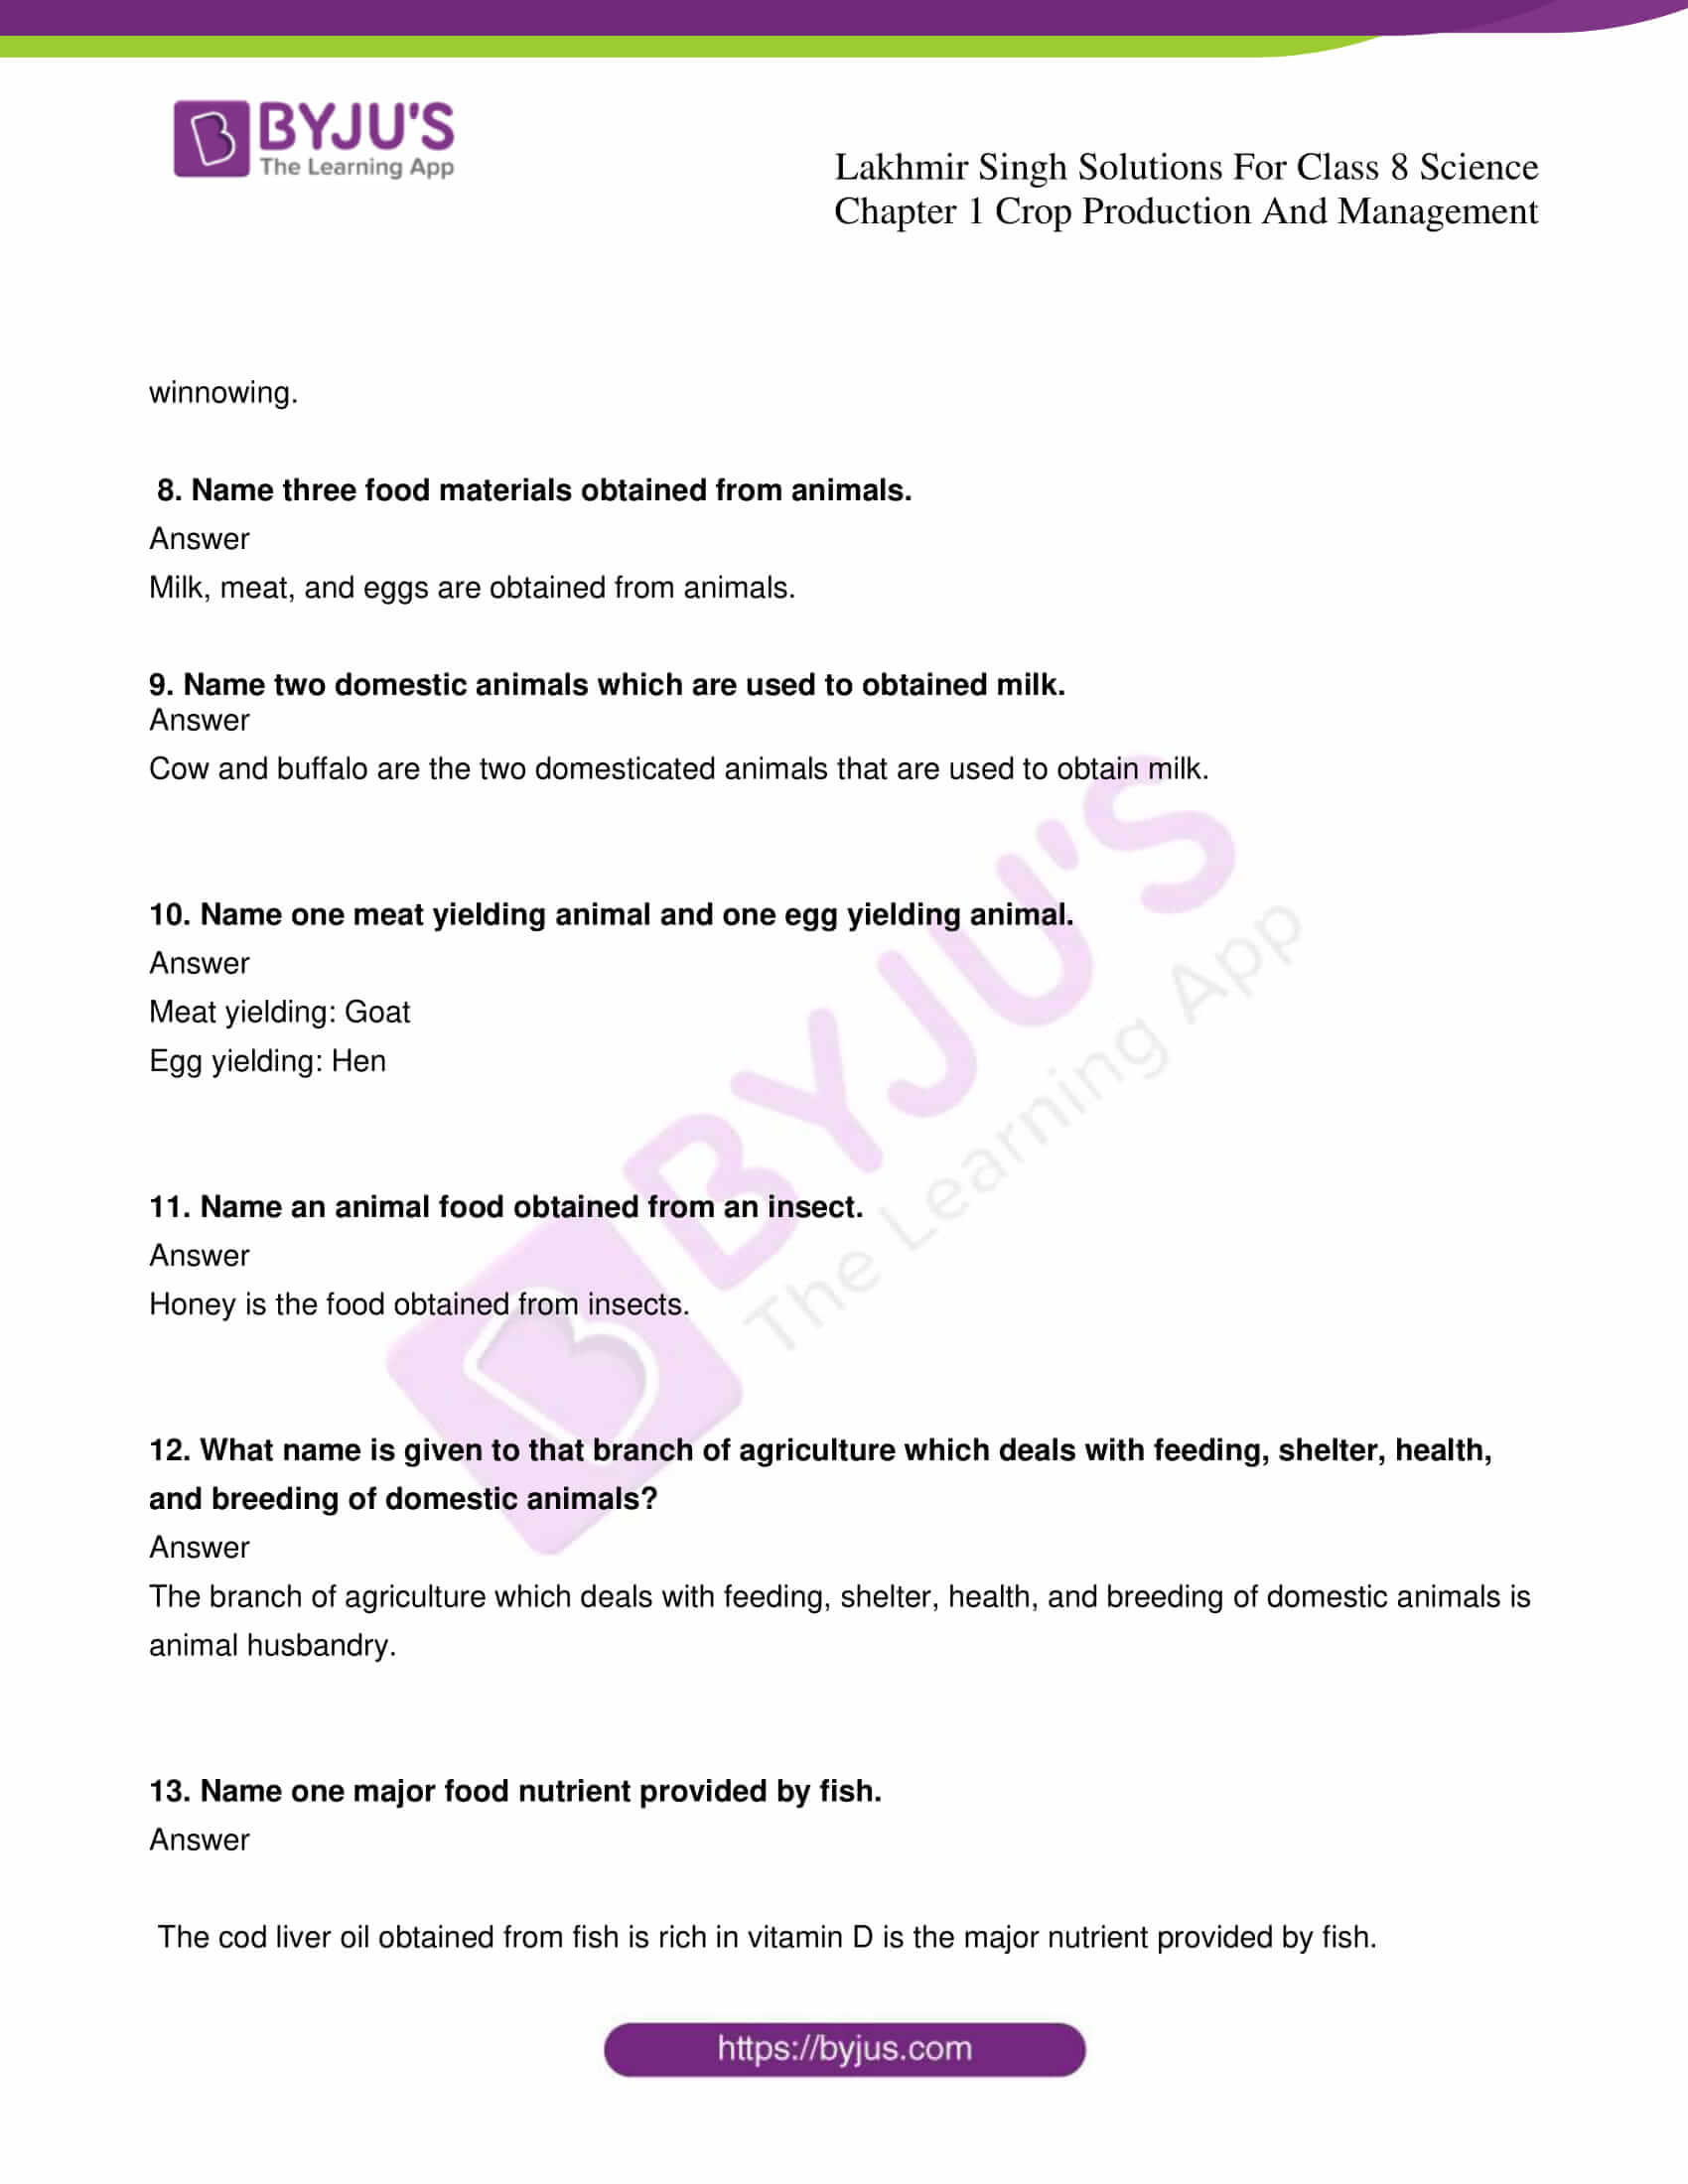 lakhmir singh solutions for class 8 science chapter 1 02